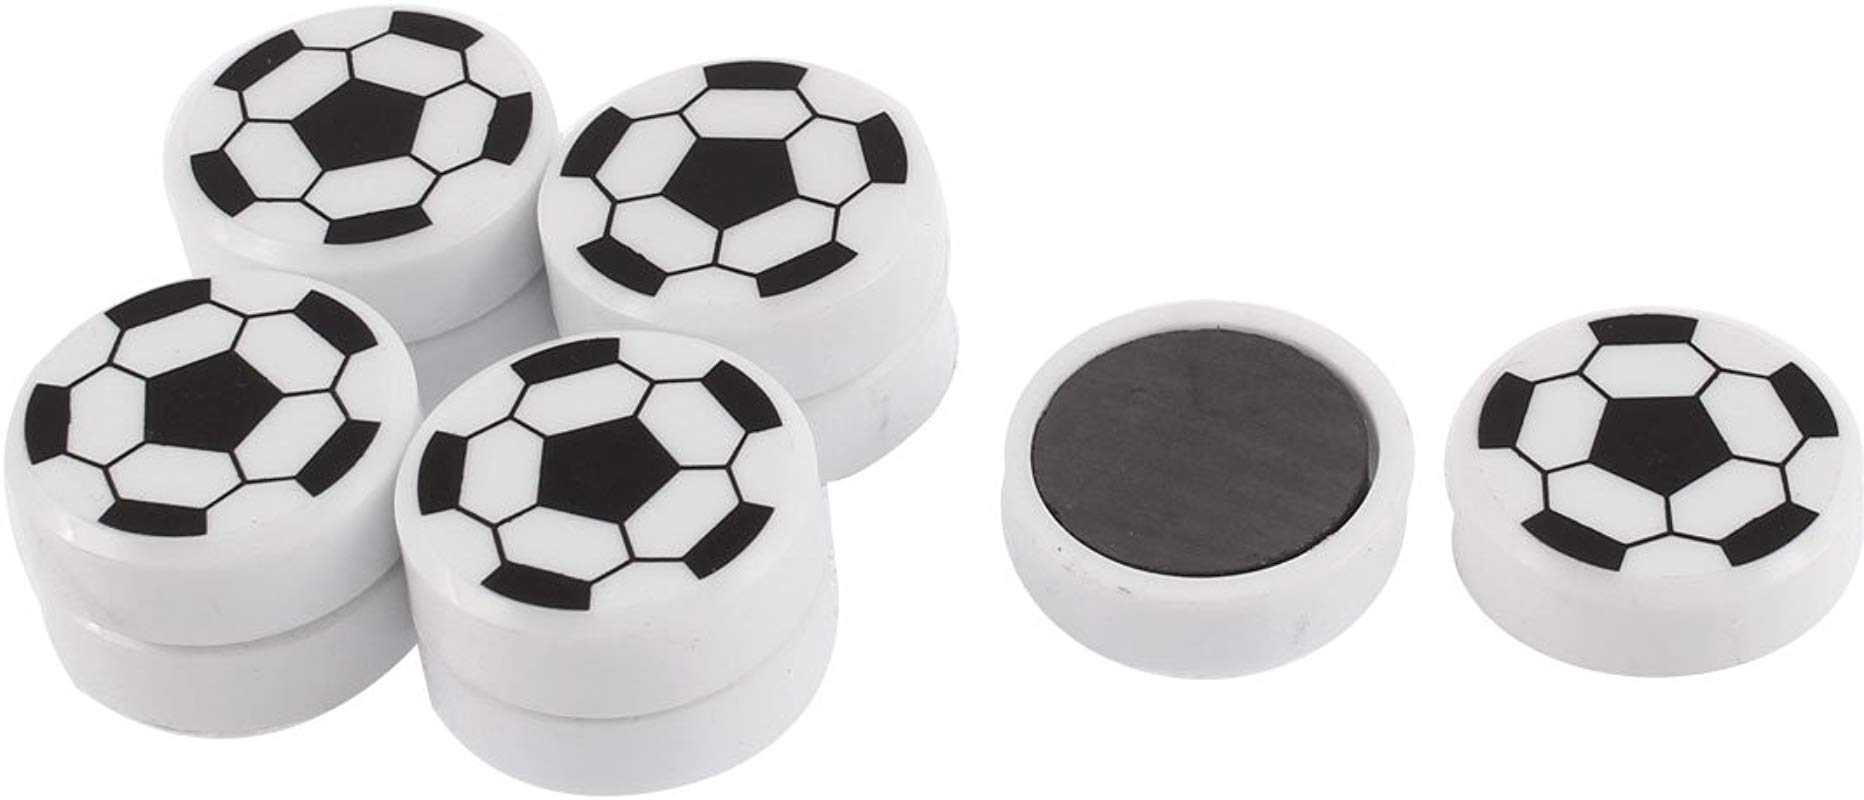 Uxcell Soccer Ball Pattern Round Refrigerator Sticker Fridge Magnet 10pcs